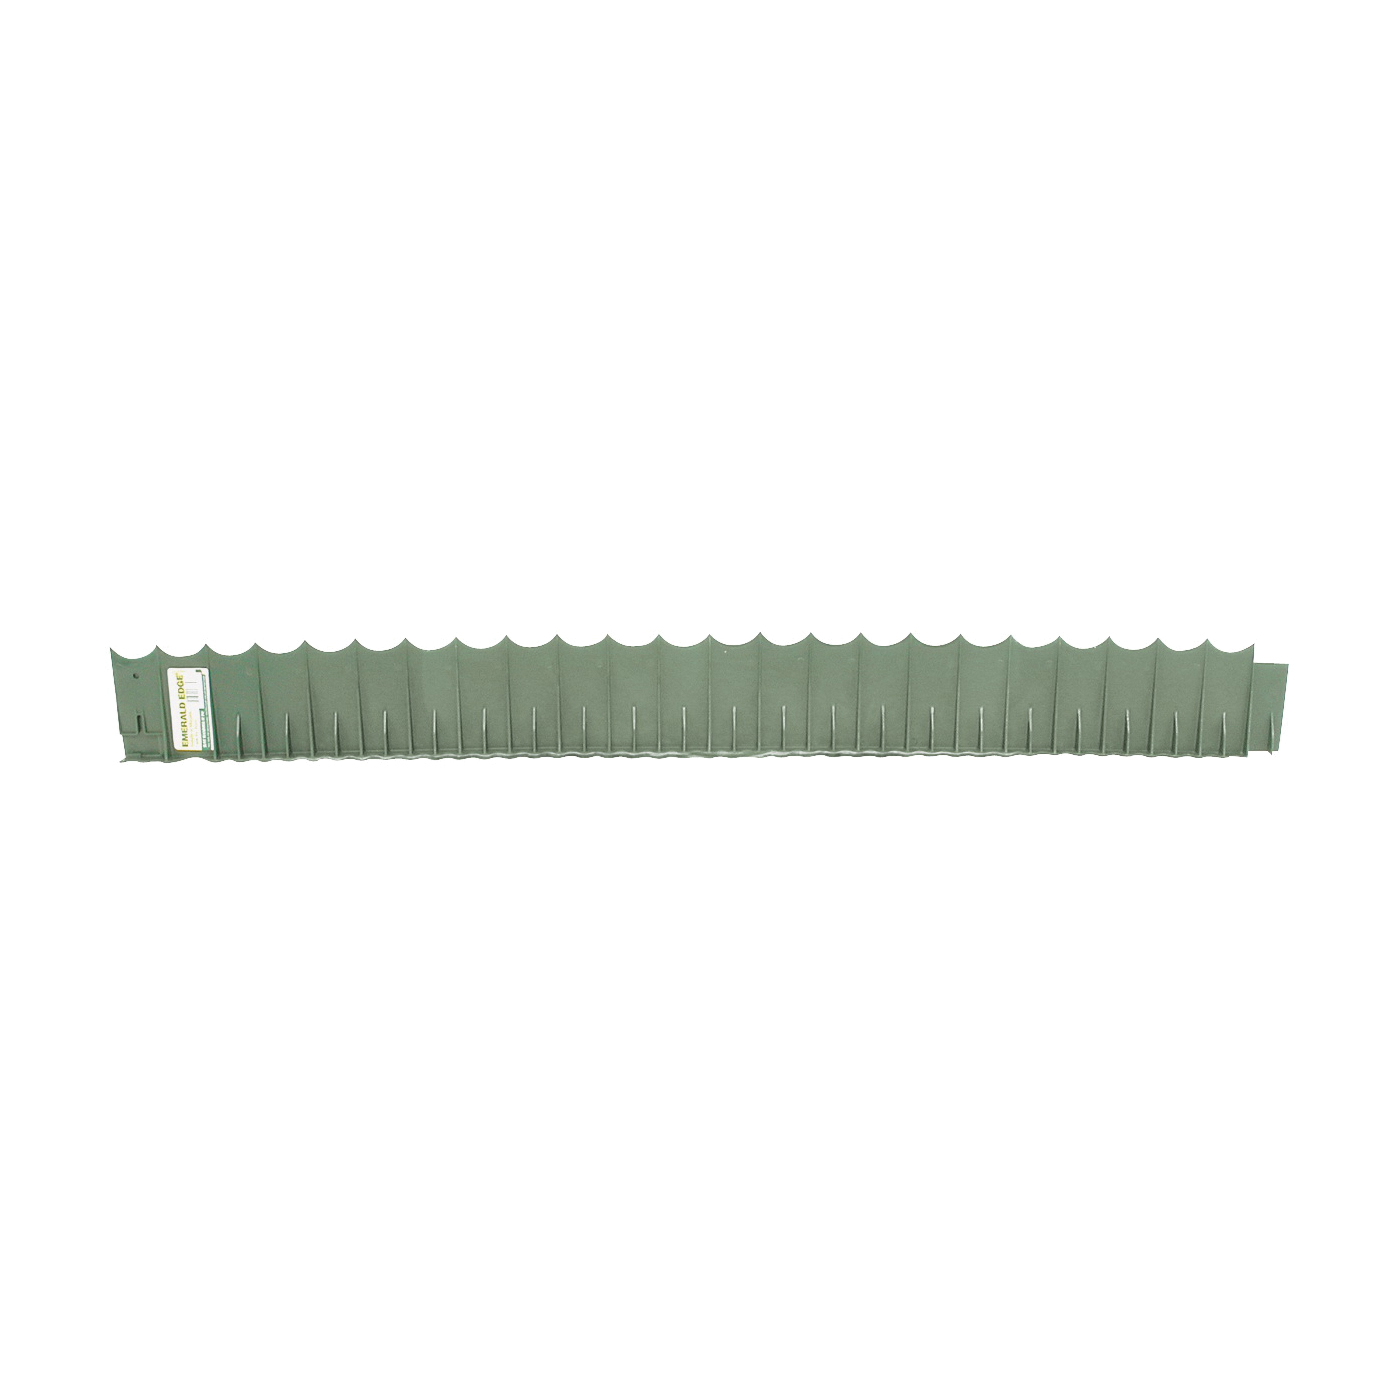 Picture of Jobes 8748 Landscape Edging, 4 ft L, 5 in H, Plastic, Green